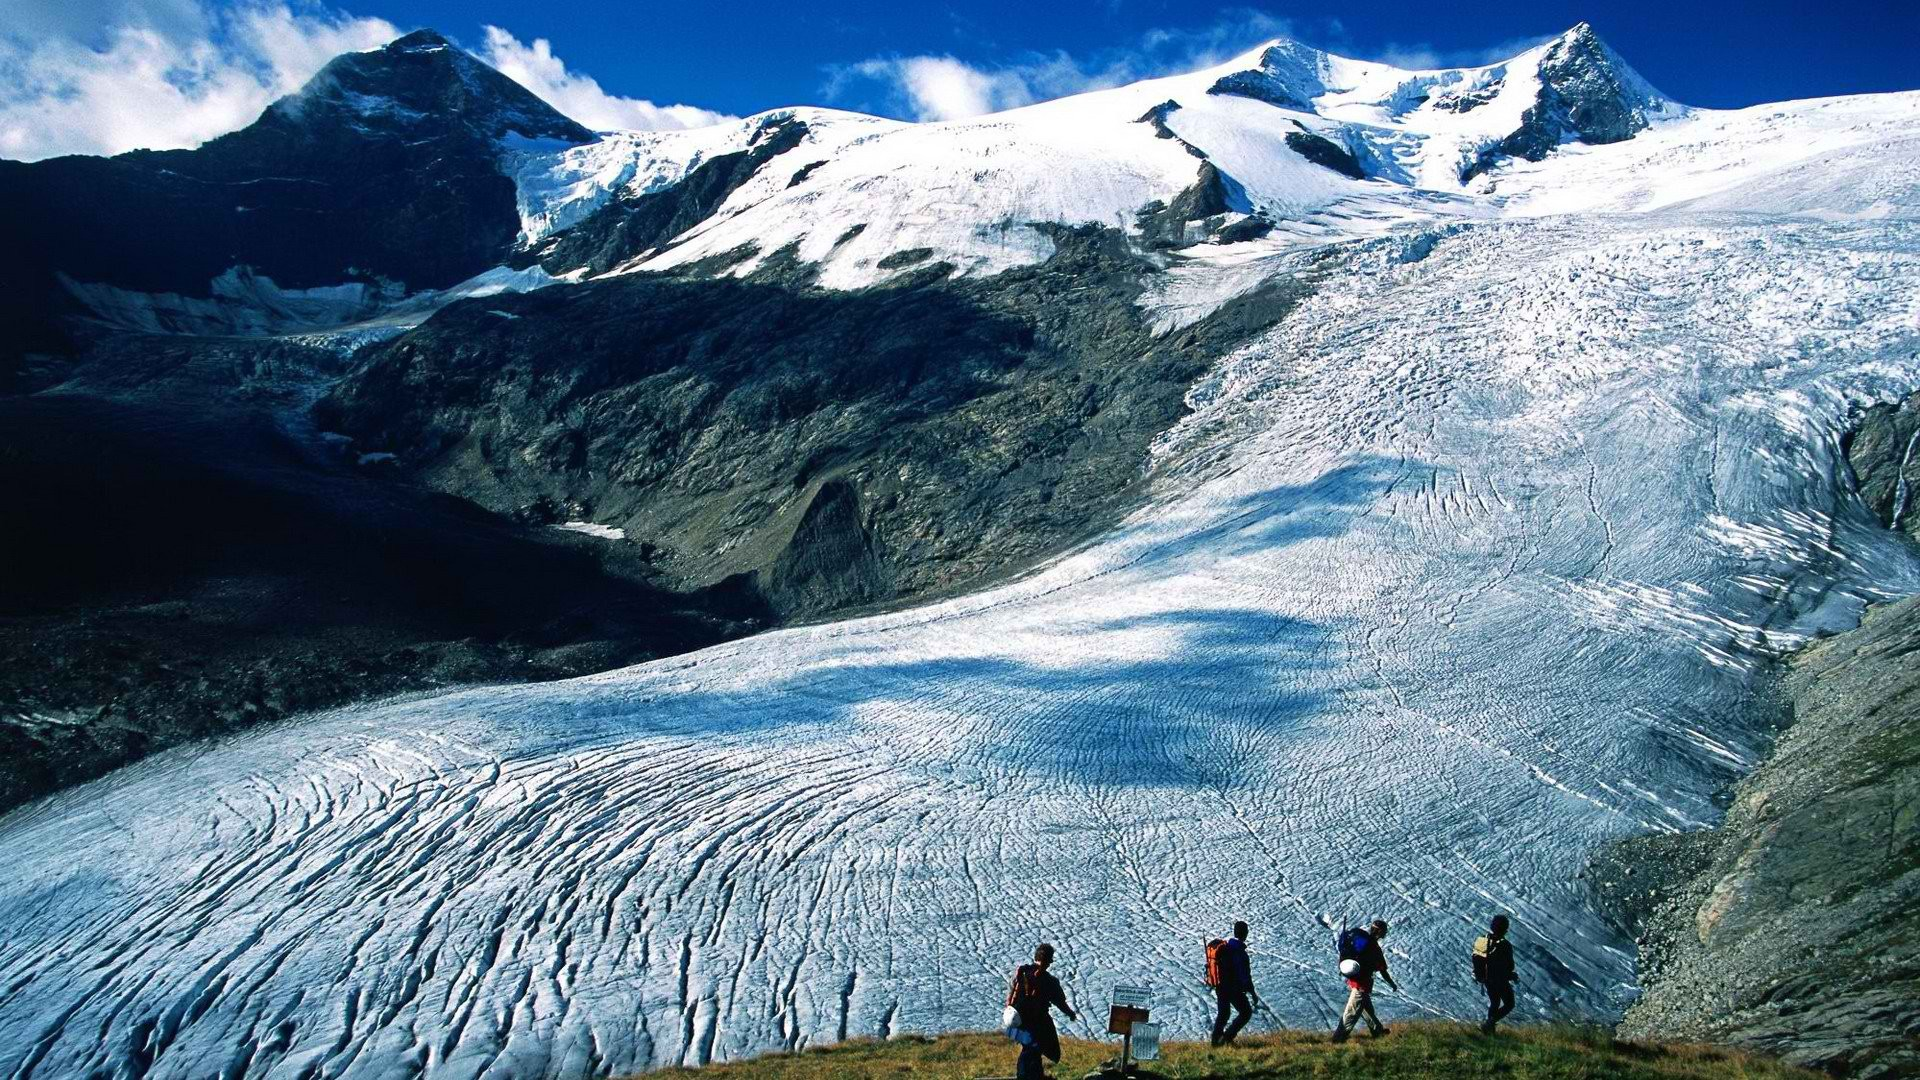 Glacier Mountains Hiking People Sports Wallpaper 1920x1080 79516 Wallpaperup